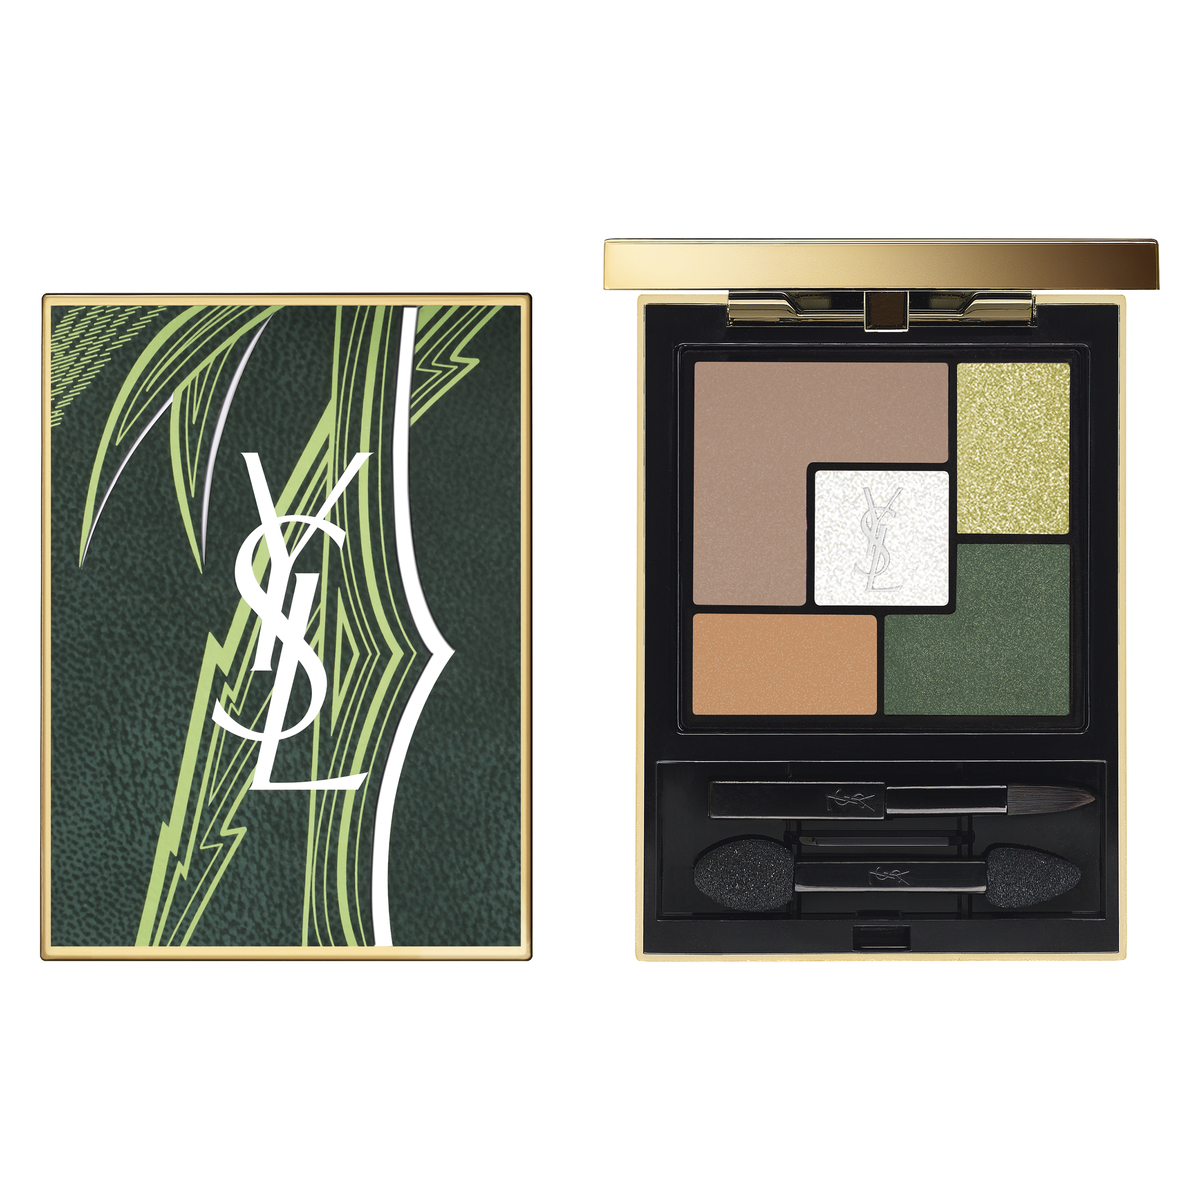 Acquista Online YSL Decadent Haven Couture Palette Collector